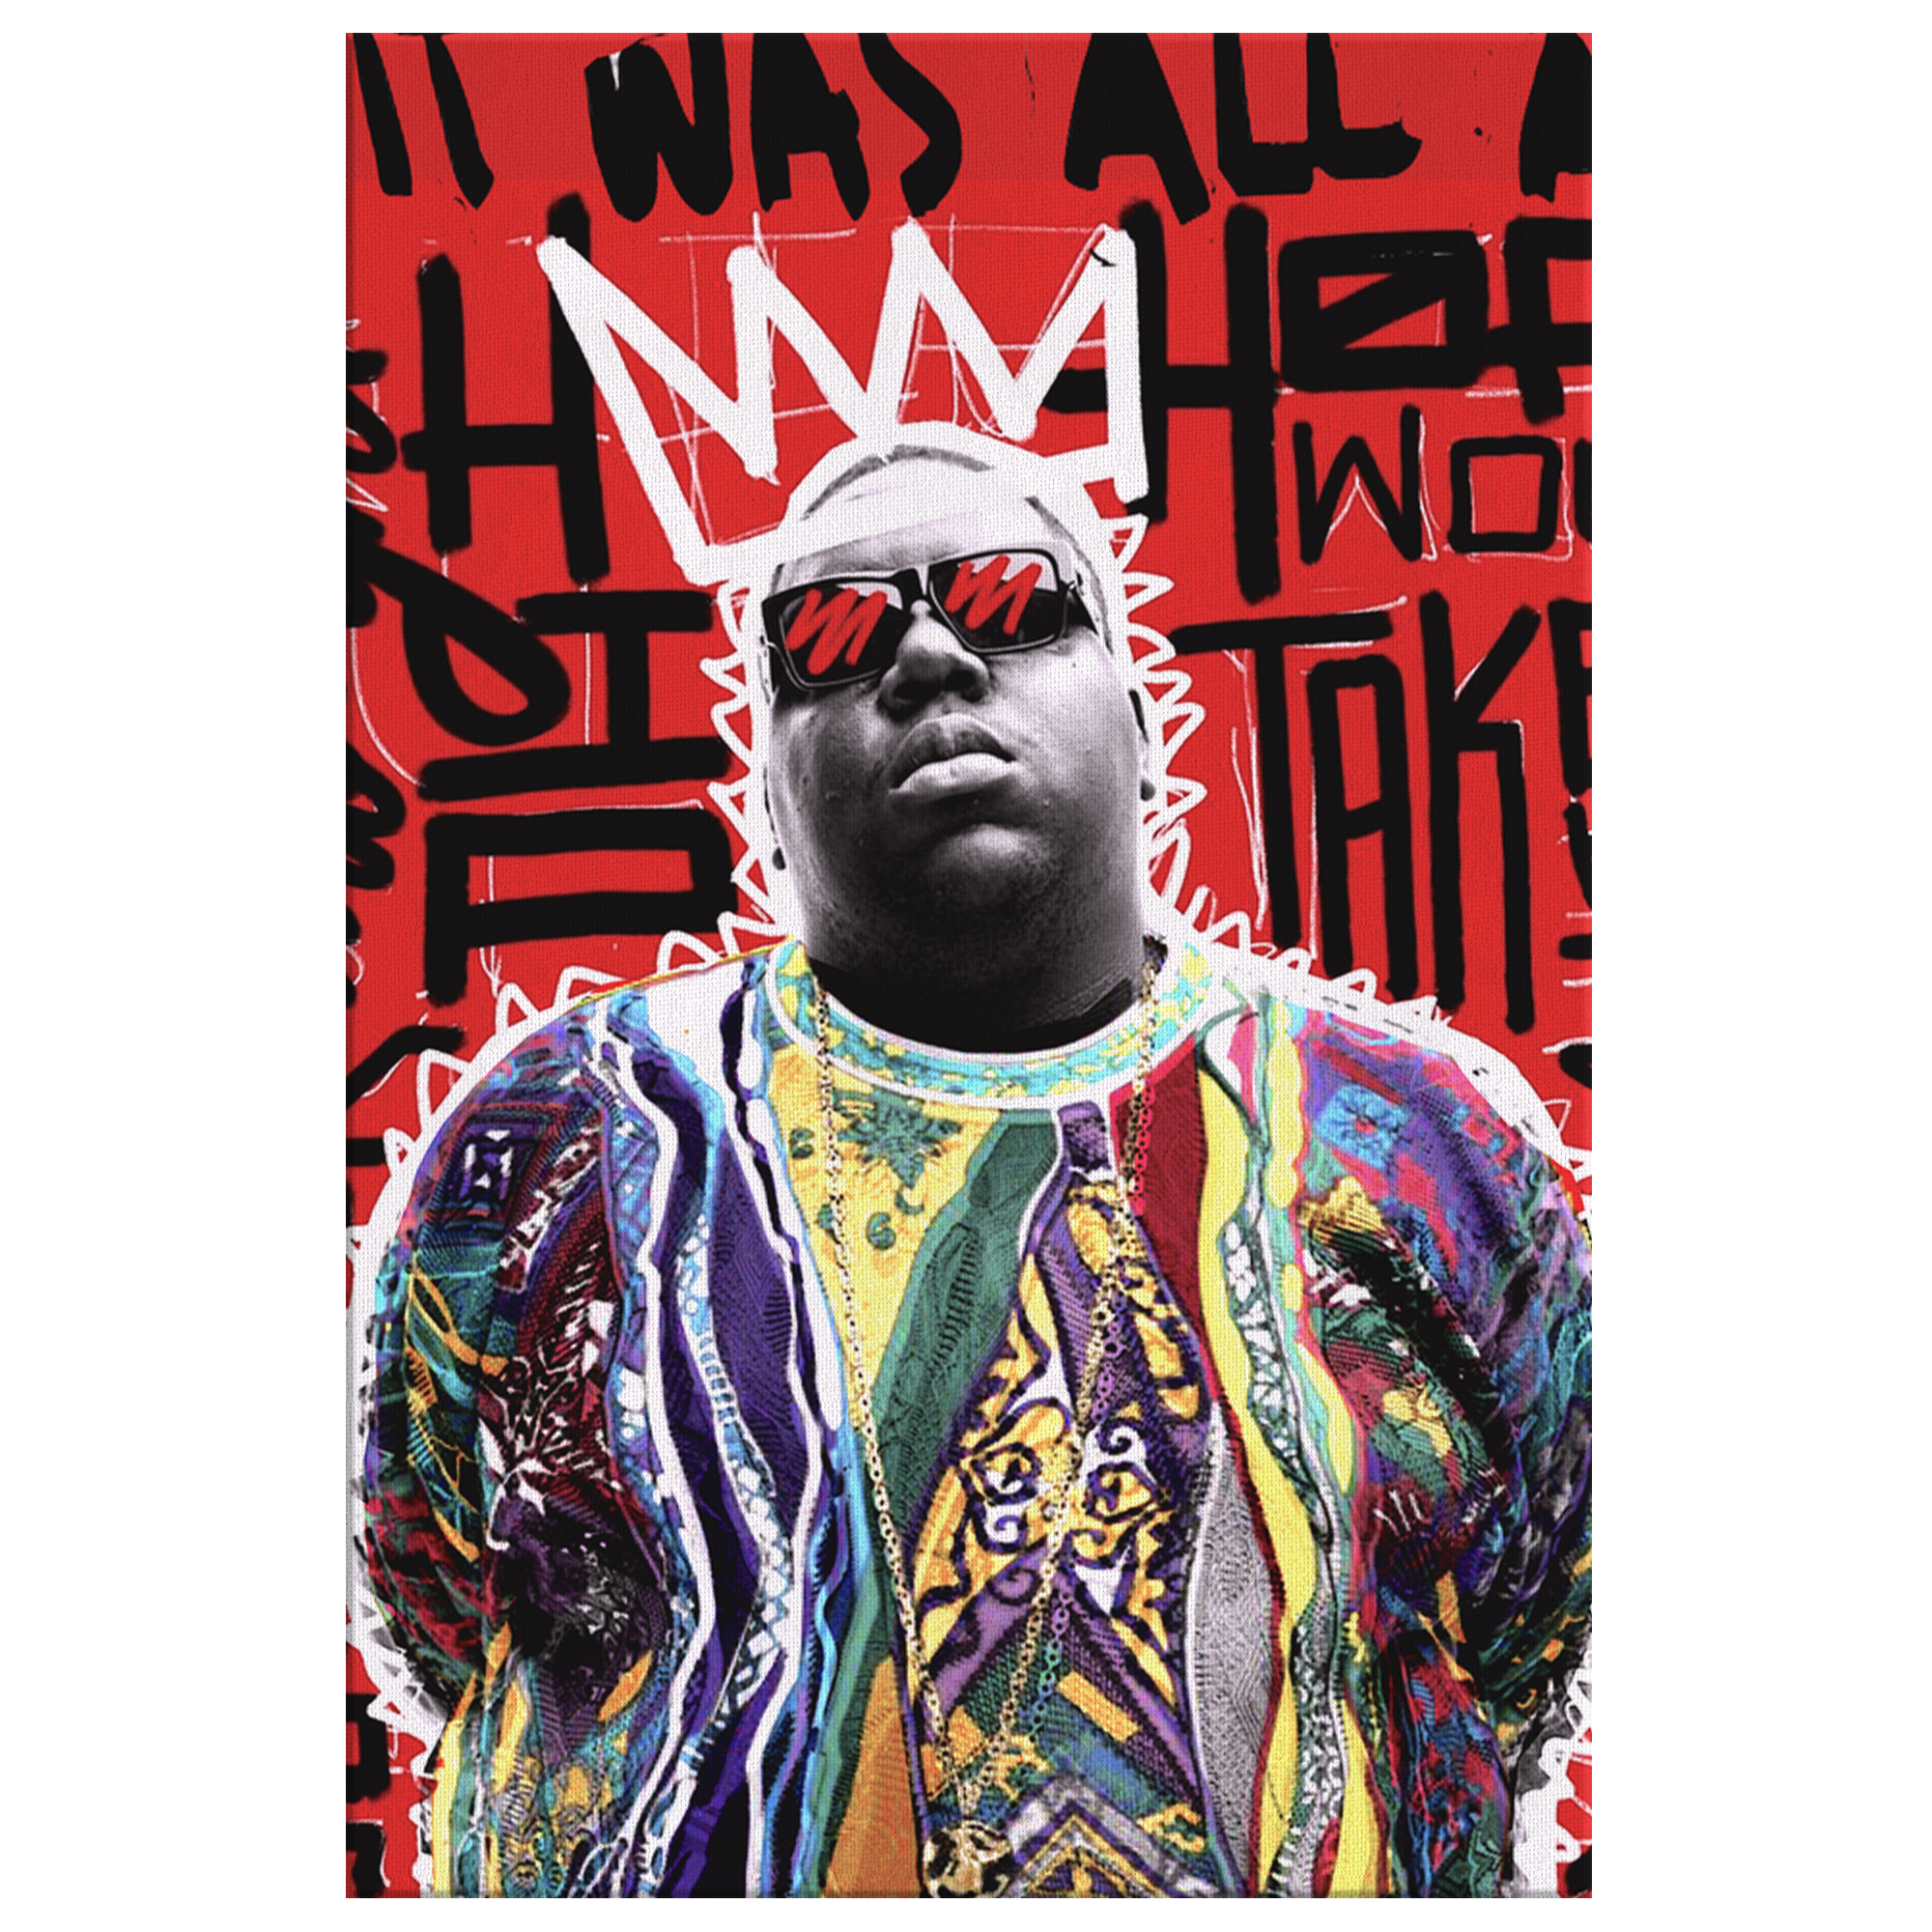 Iconic Biggie